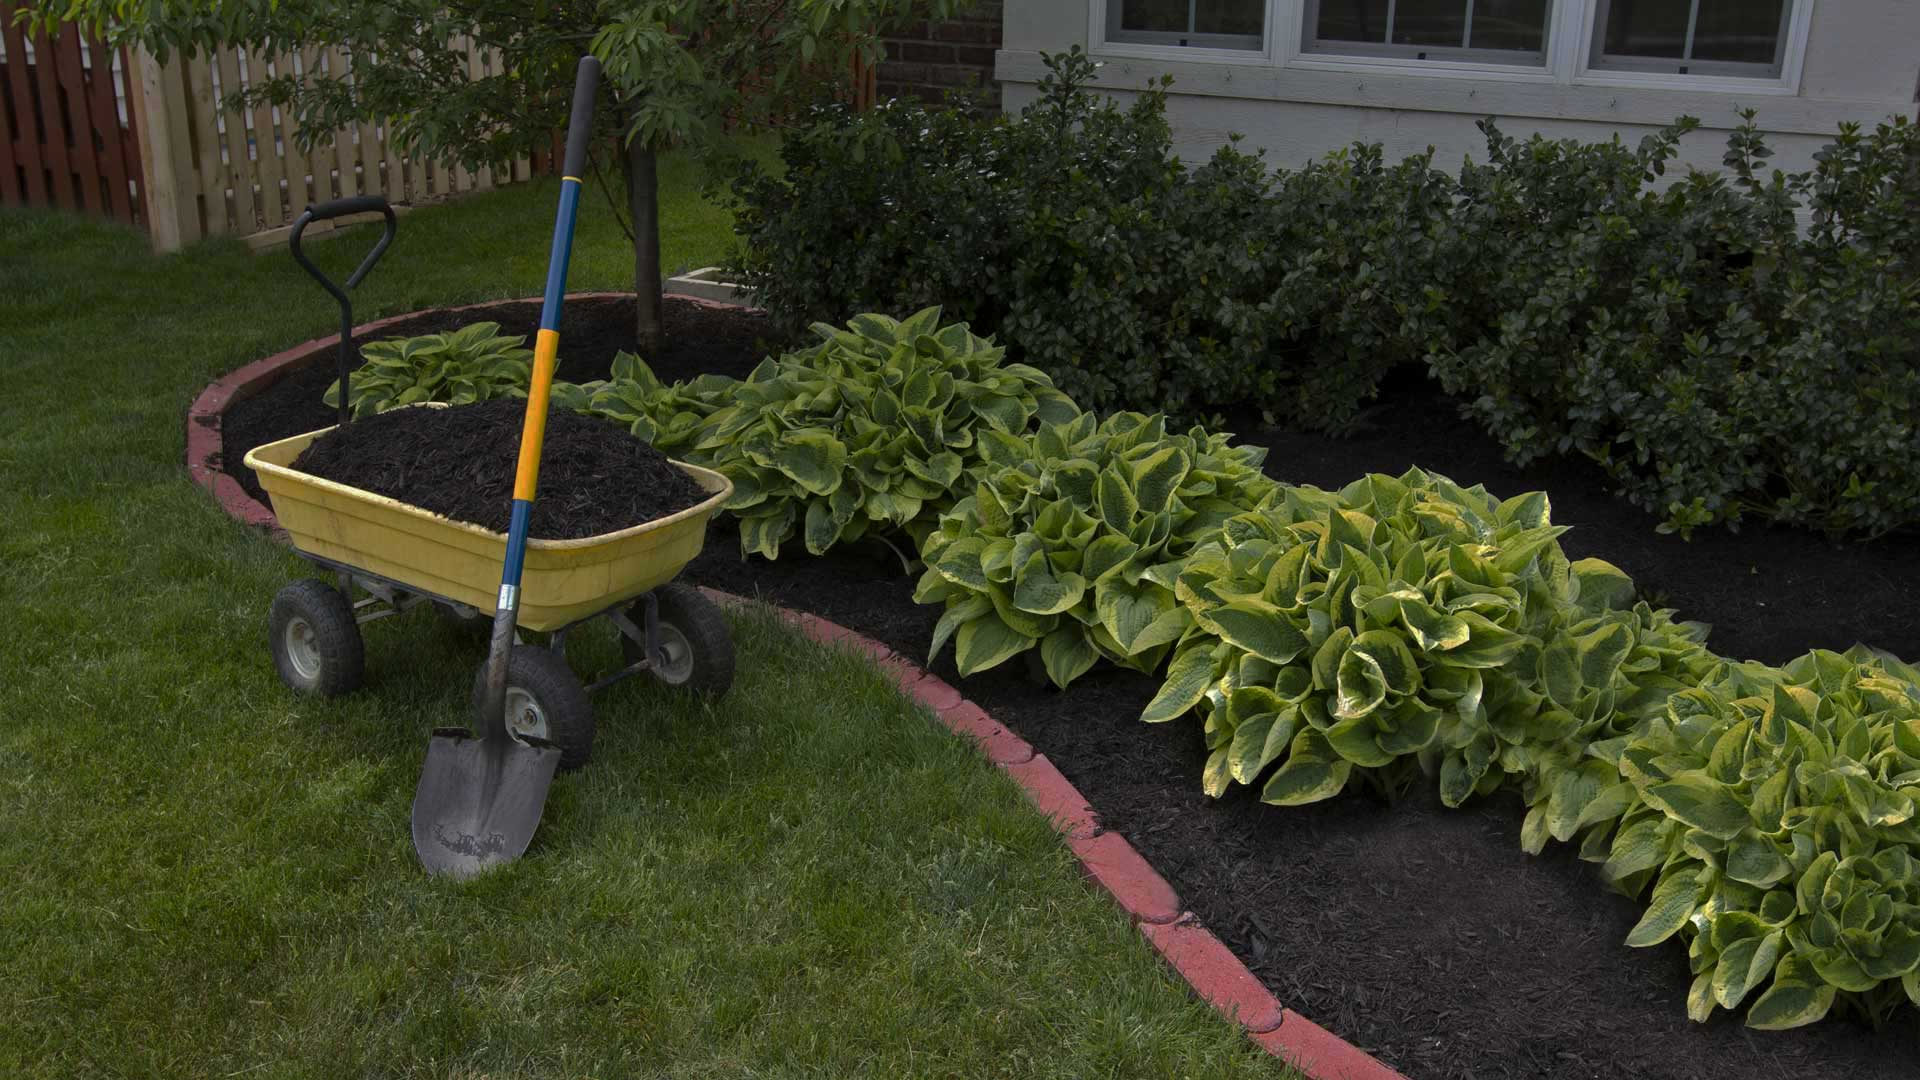 Wheel barrel filled with mulch next to de-weeded garden bed filled with triple mix and hostas